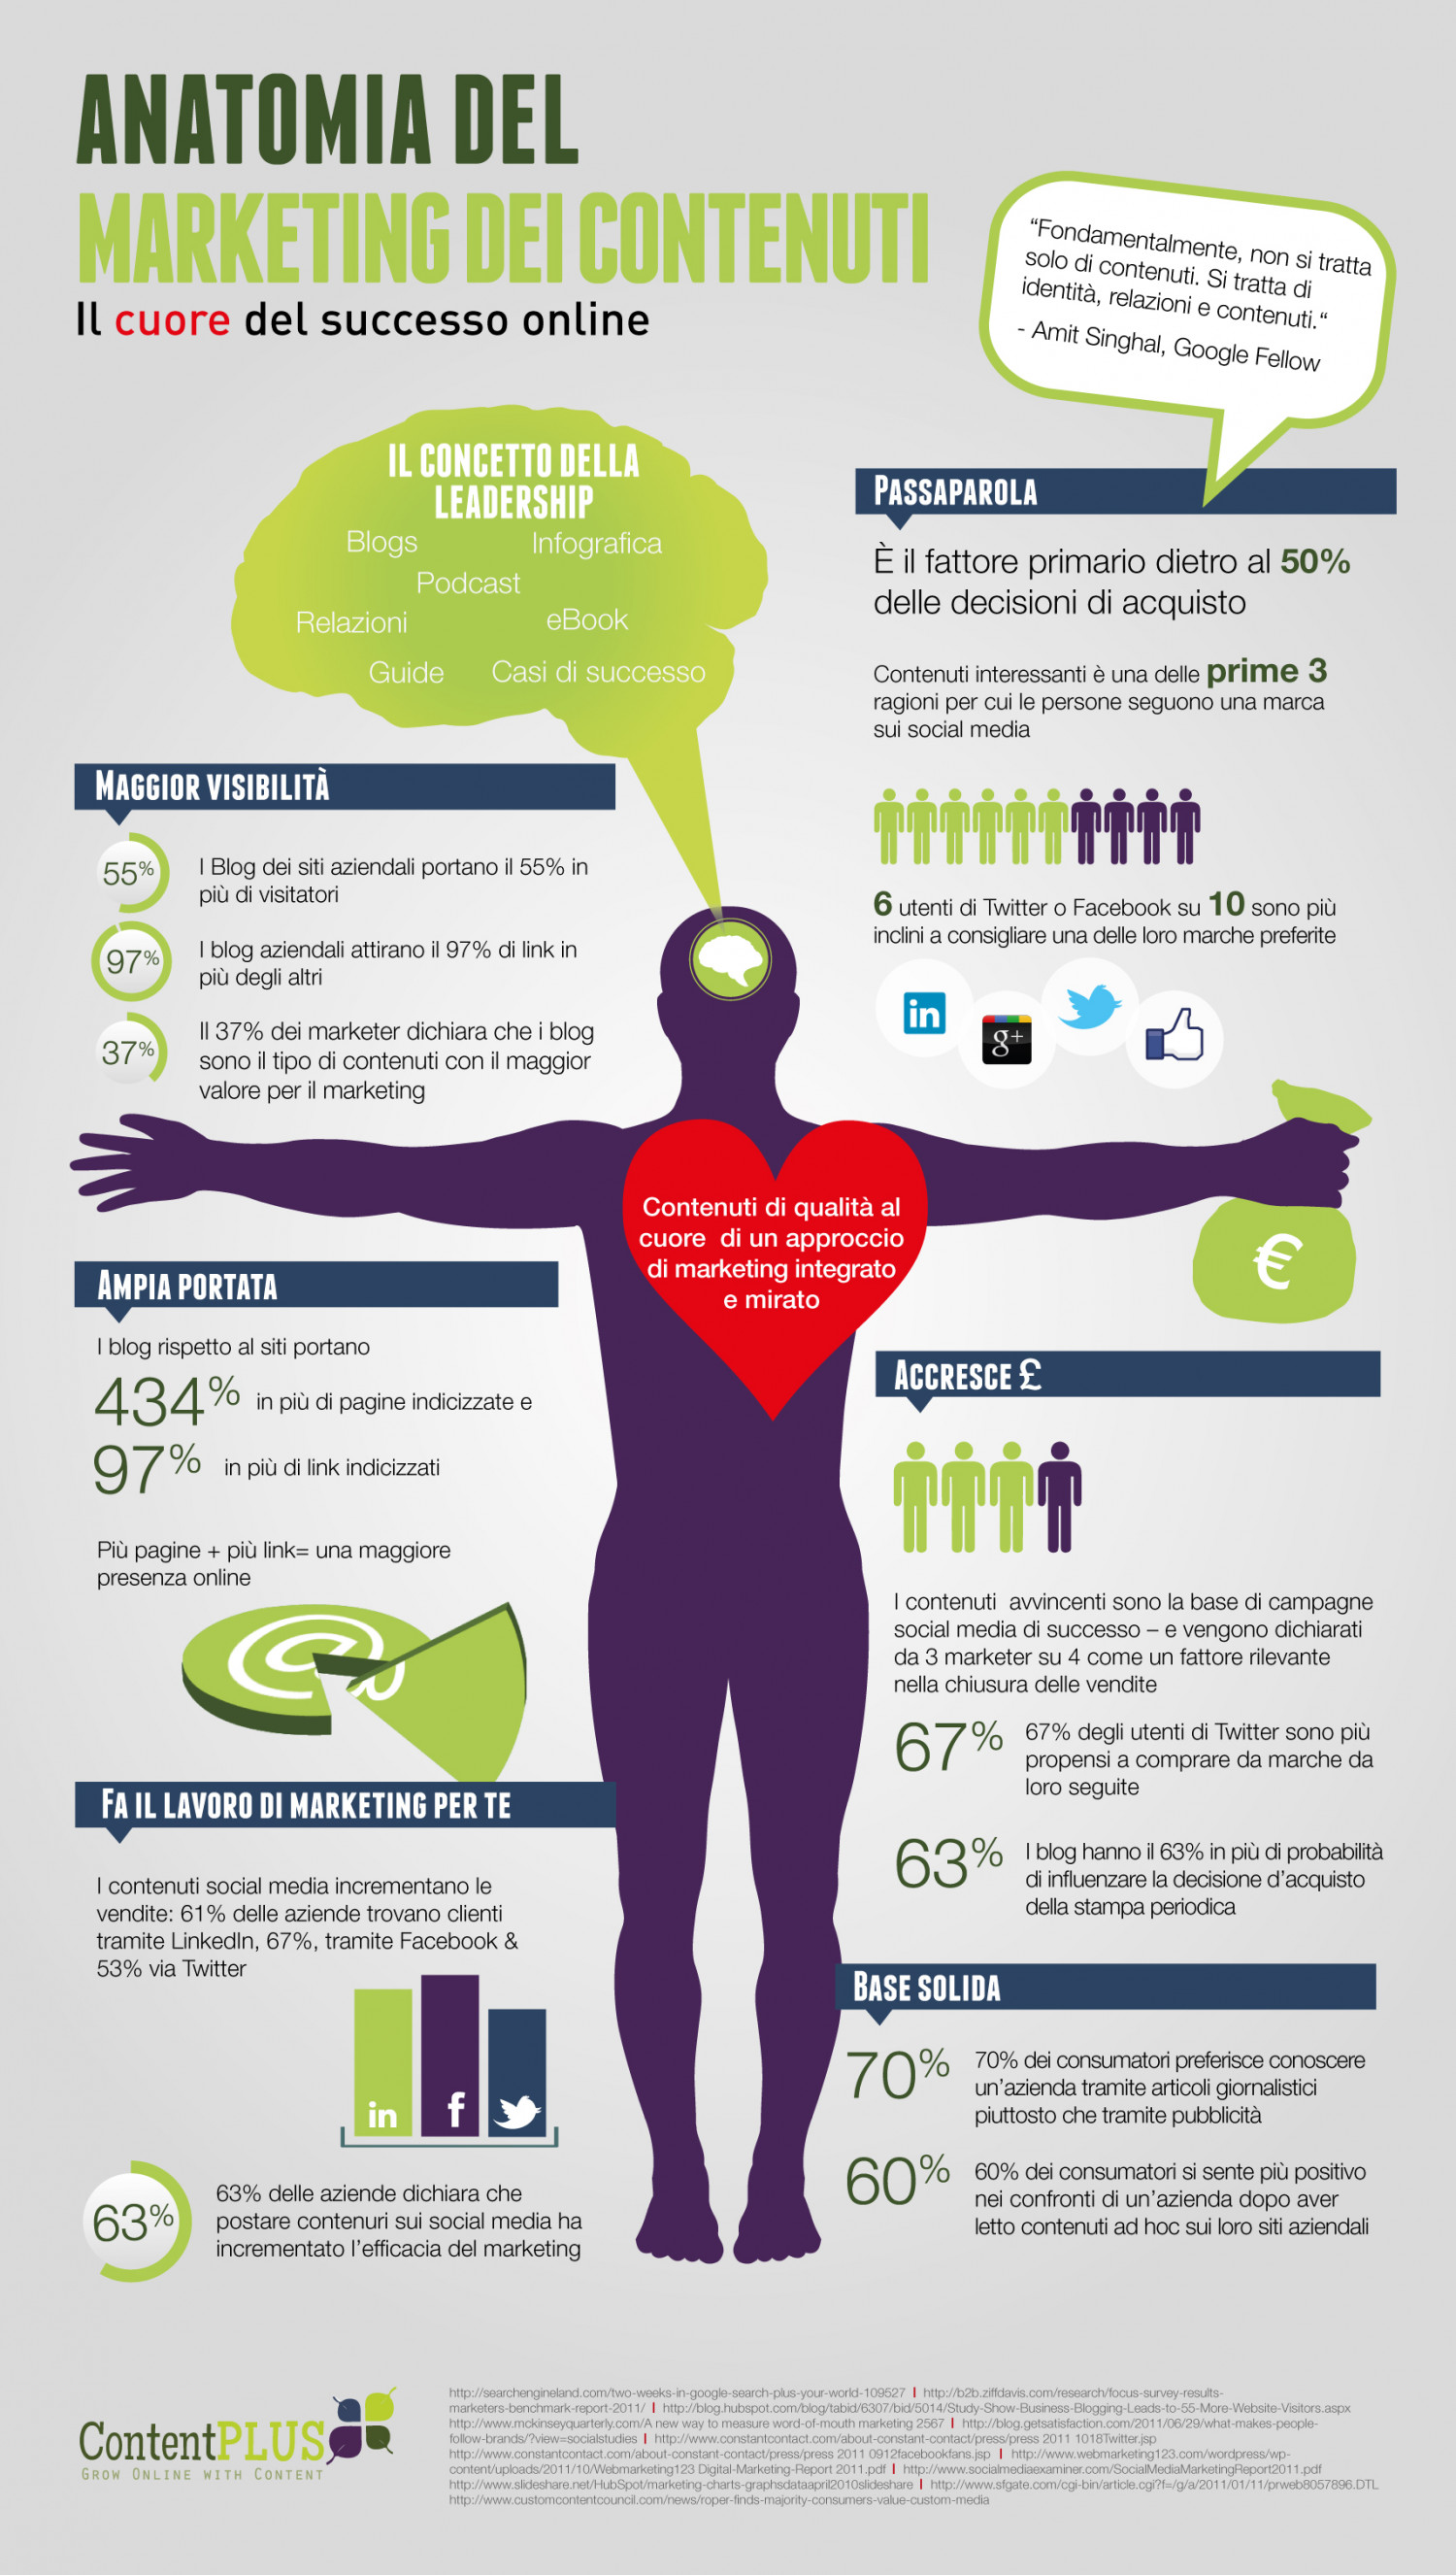 Anatomia del Marketing dei Contenuti Infographic